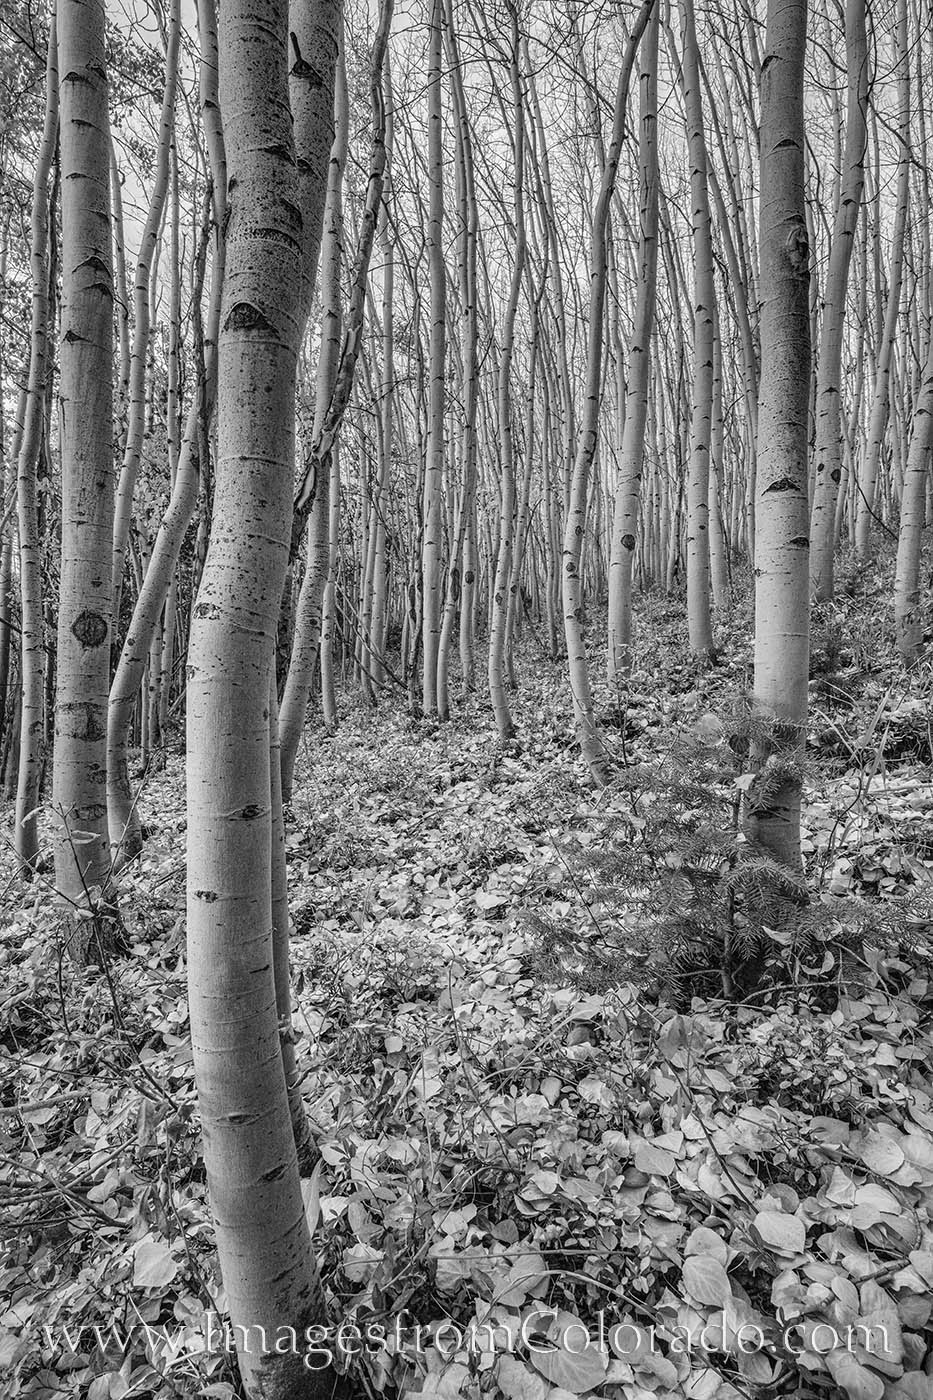 Near Fraser, Colorado, not far from Winter Park, most of the Aspen have lost their leaves as Autumn moves to Winter. Shown here...